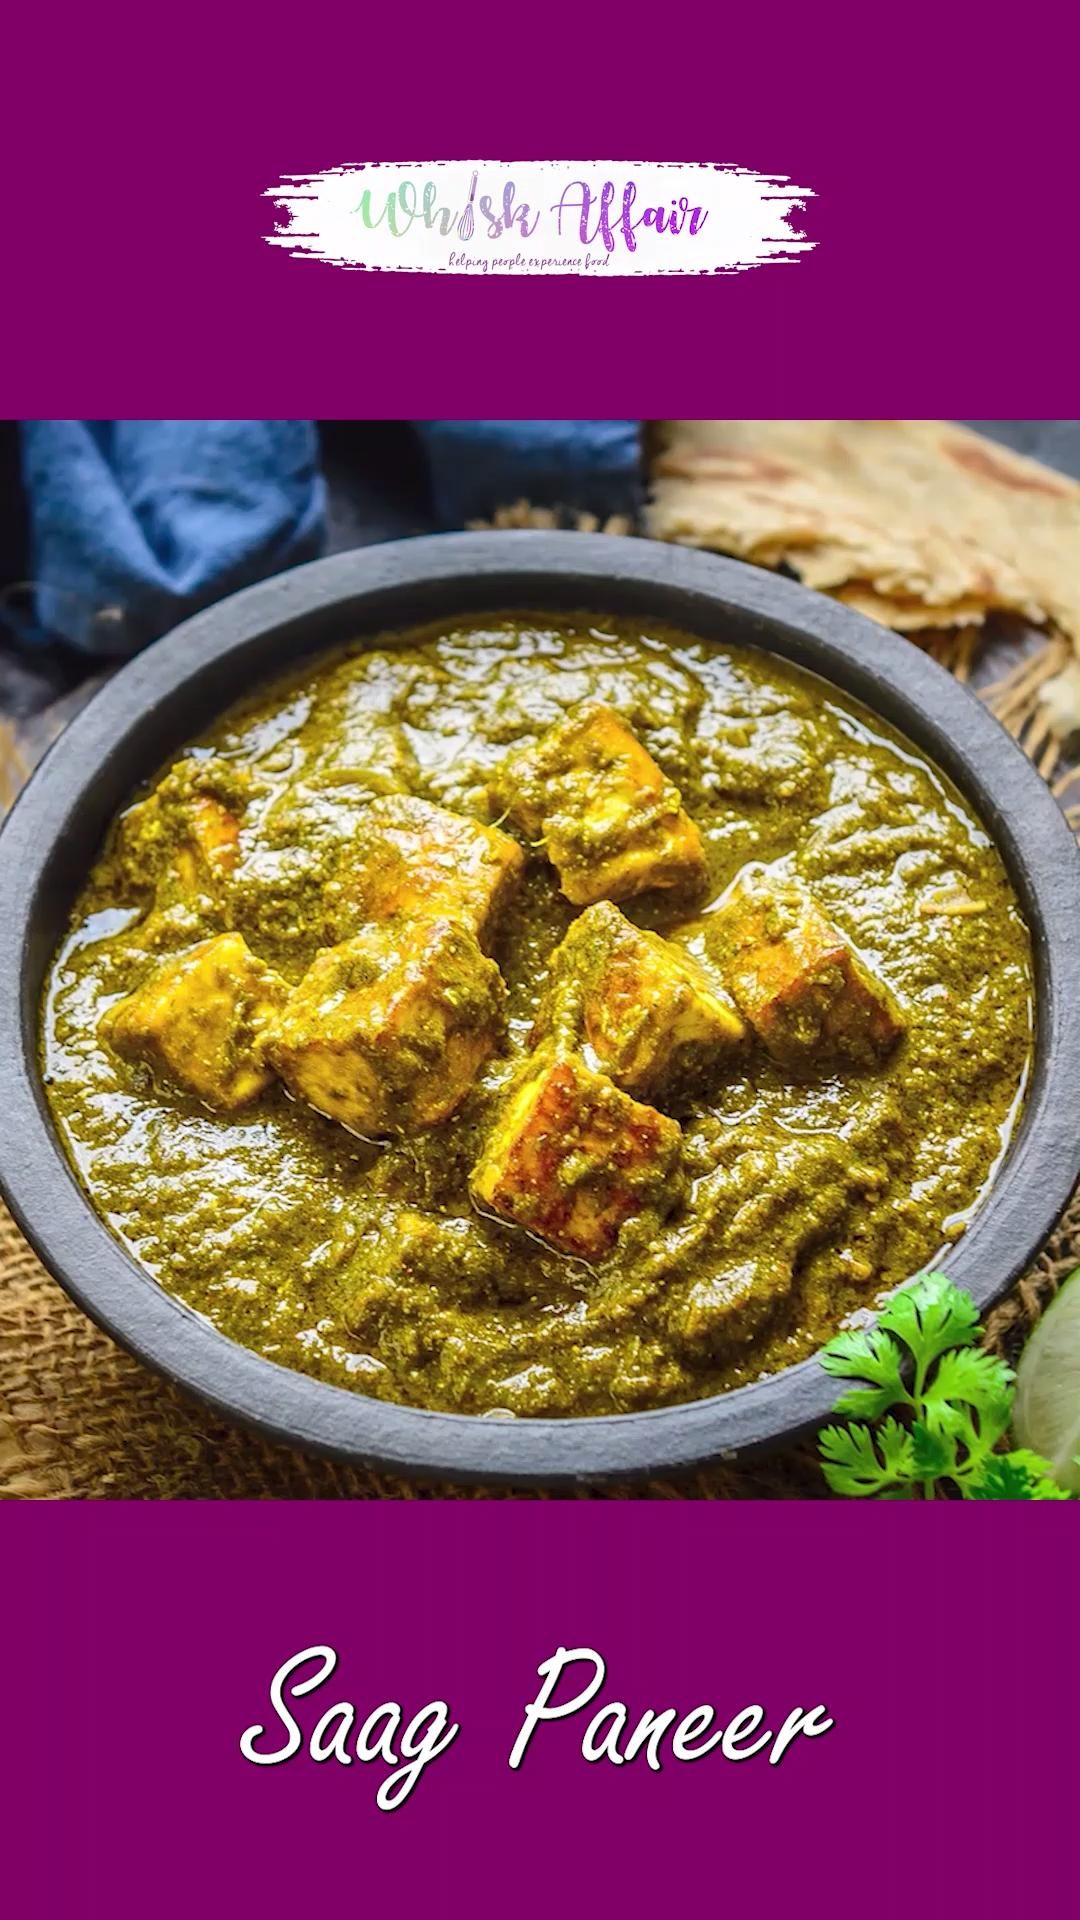 Saag Paneer Video Recipe